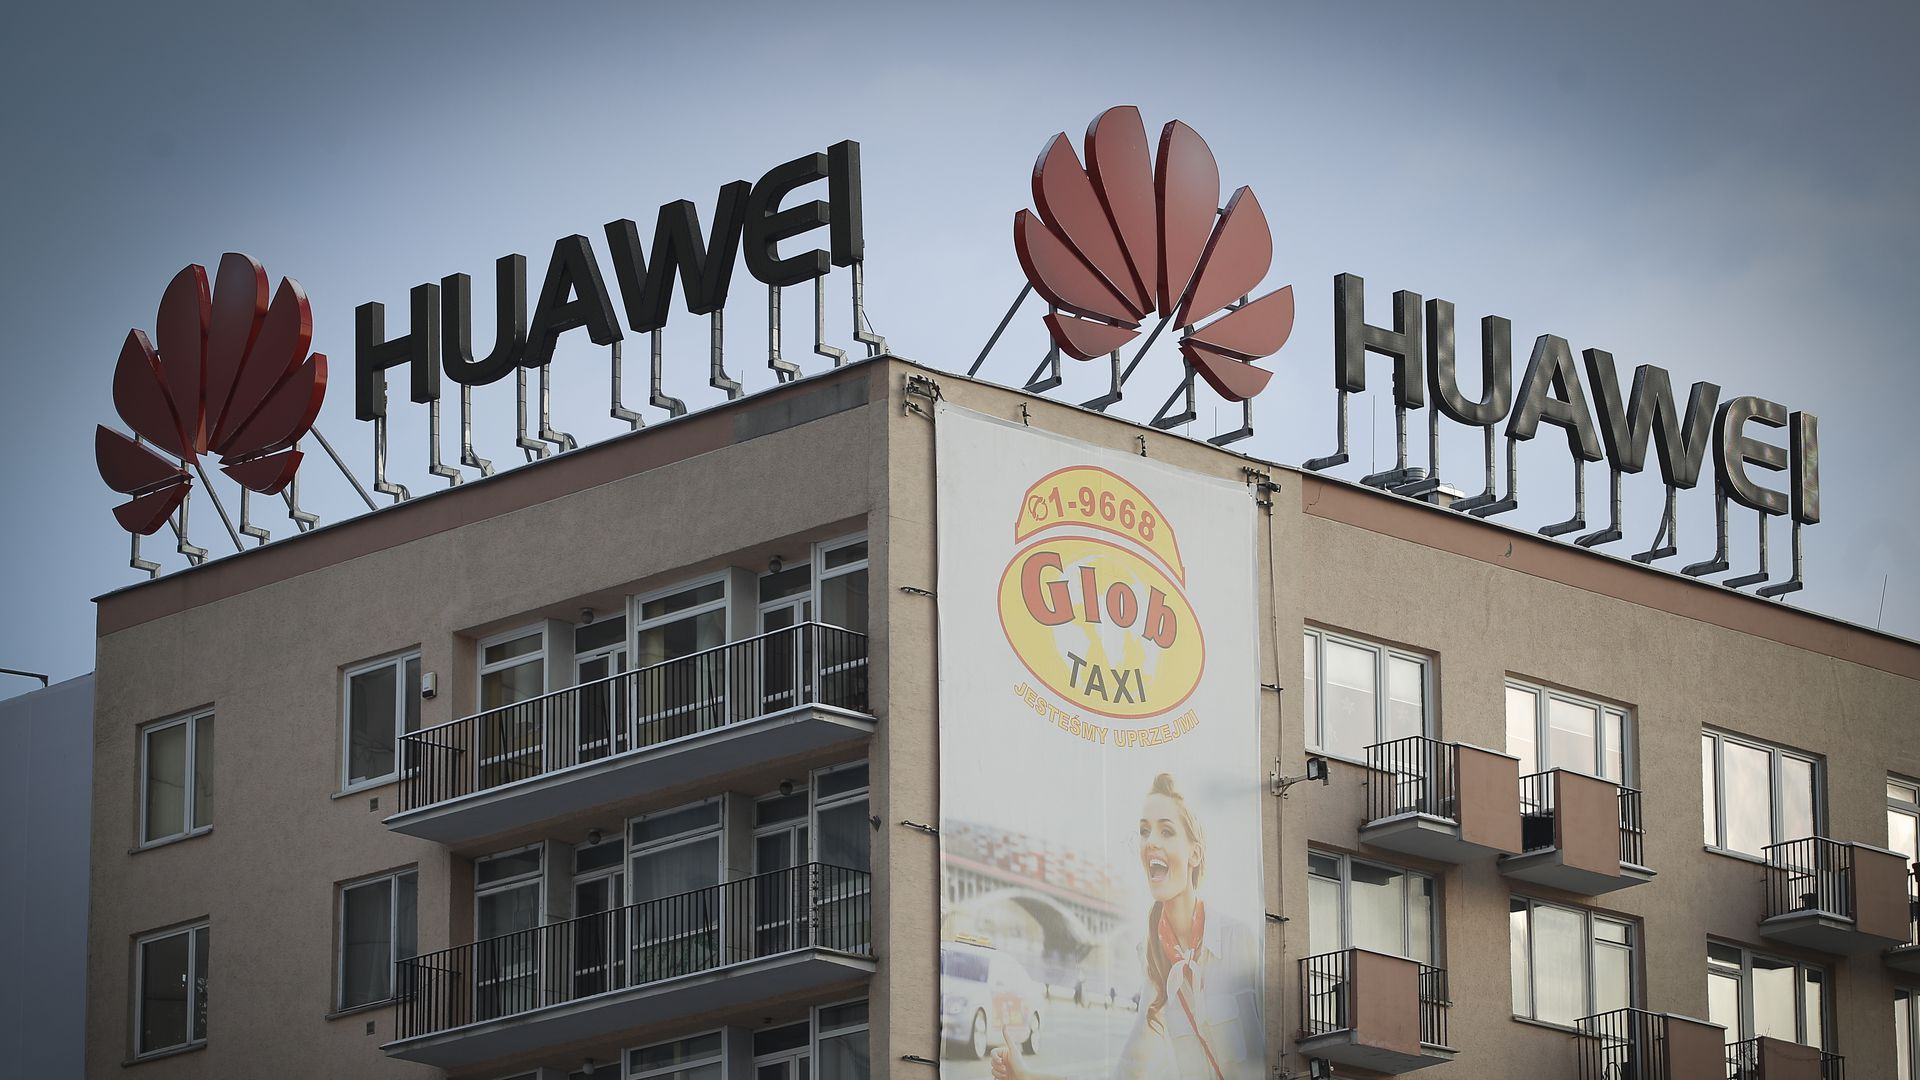 Huawei building in Warsaw, Poland.